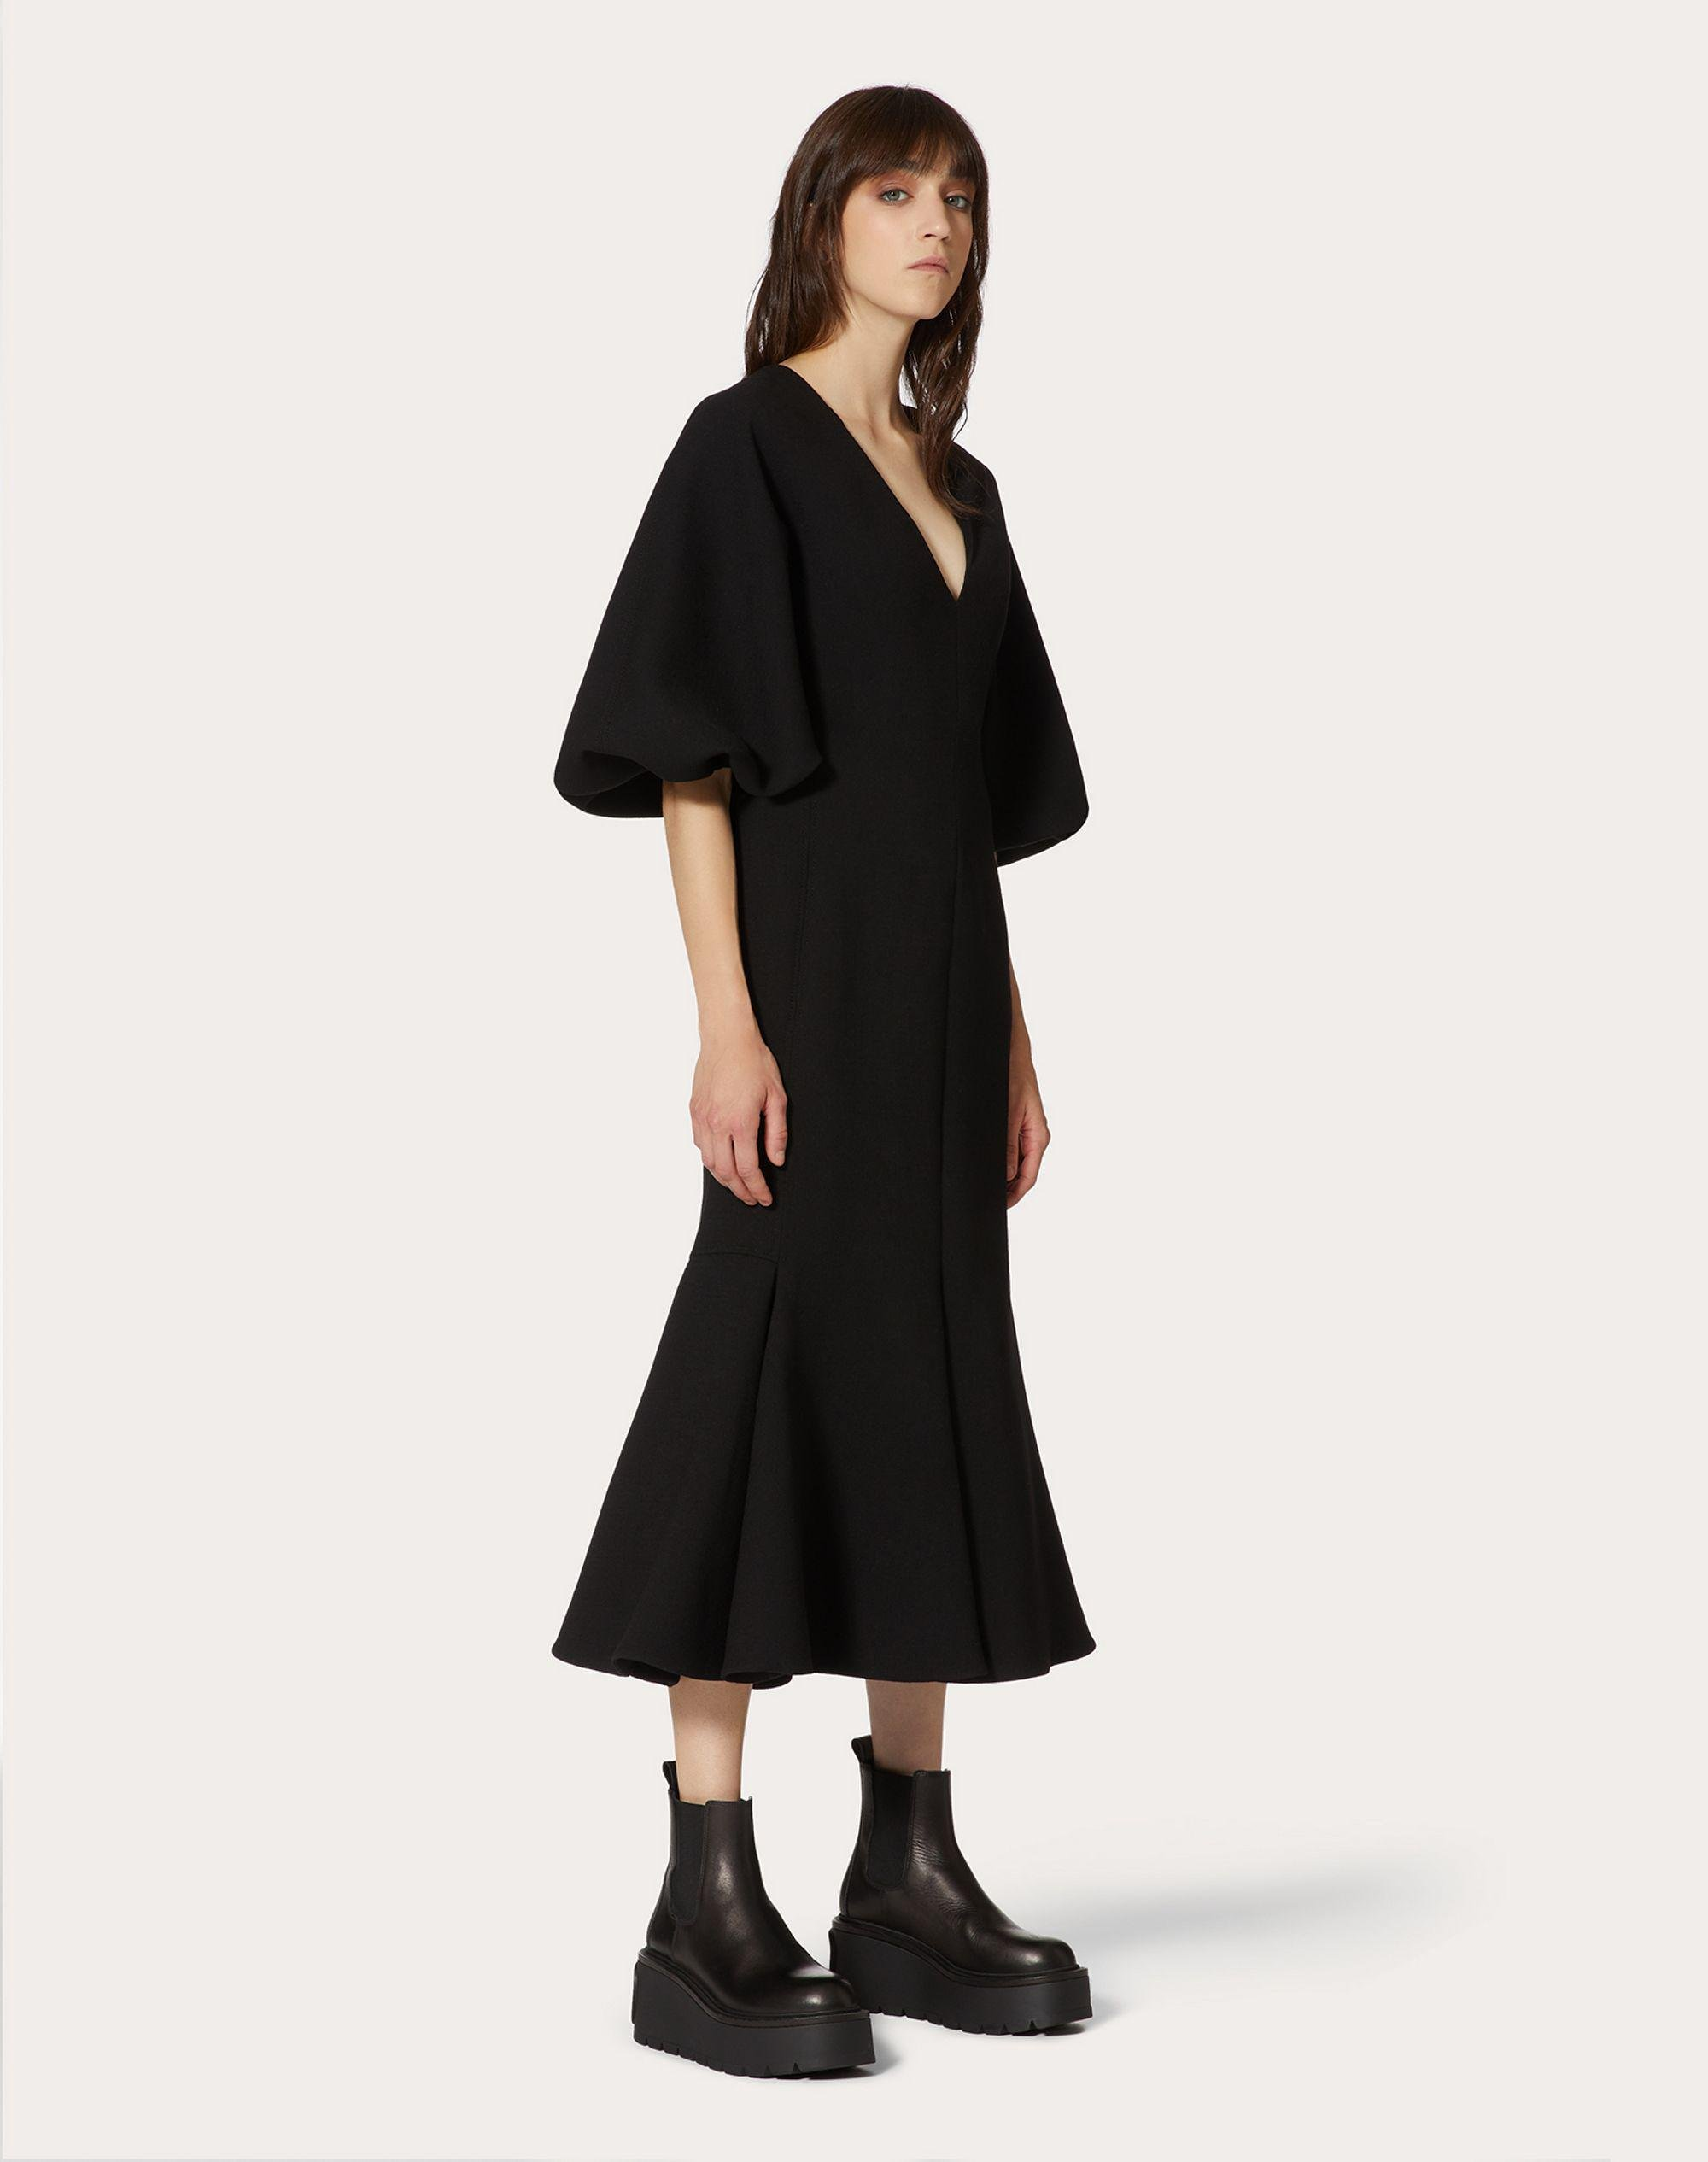 Stretch Double Crepe Wool Dress